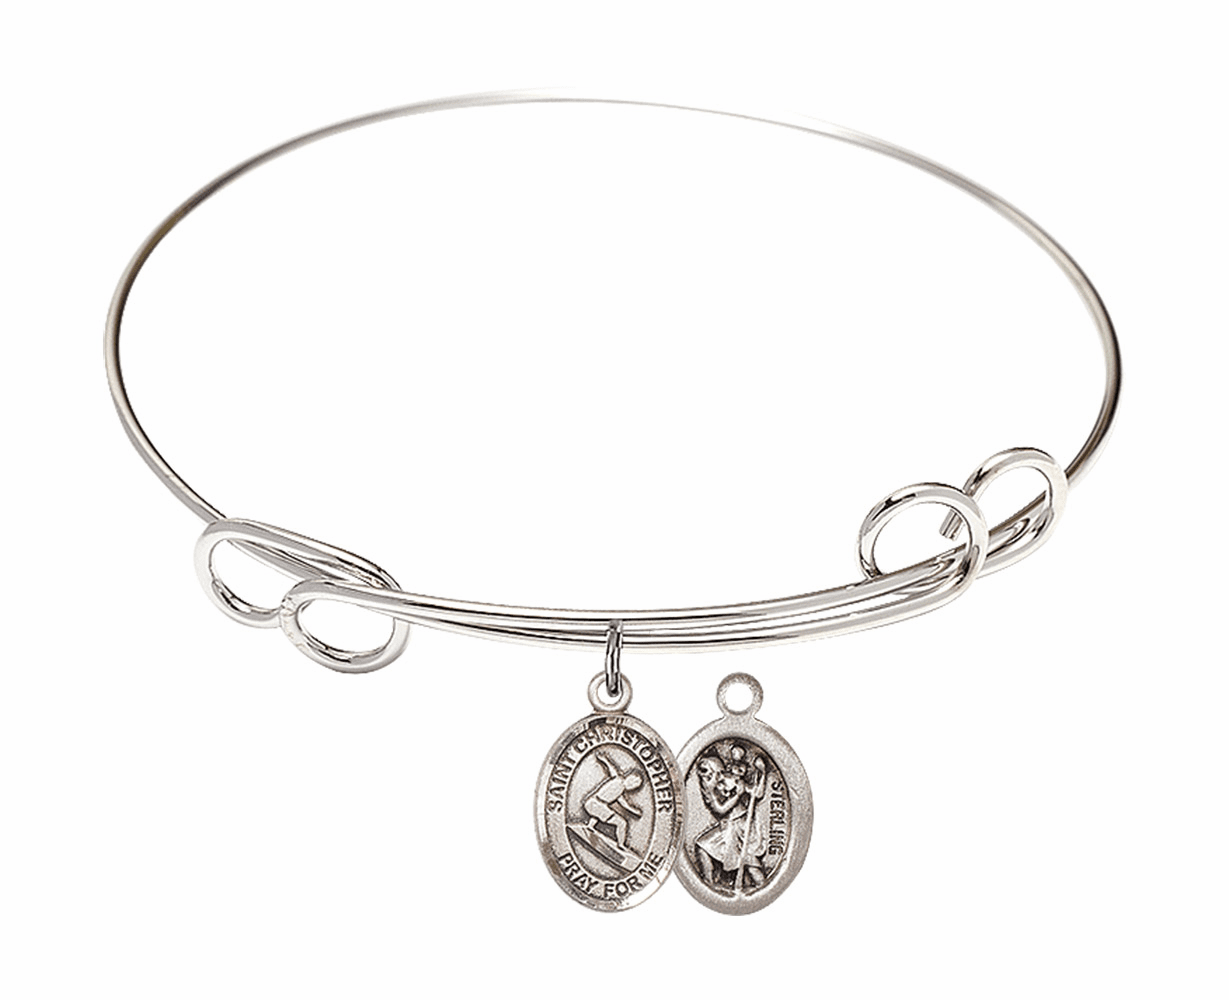 Round Loop St Christopher Surfing Bangle Charm Bracelet by Bliss